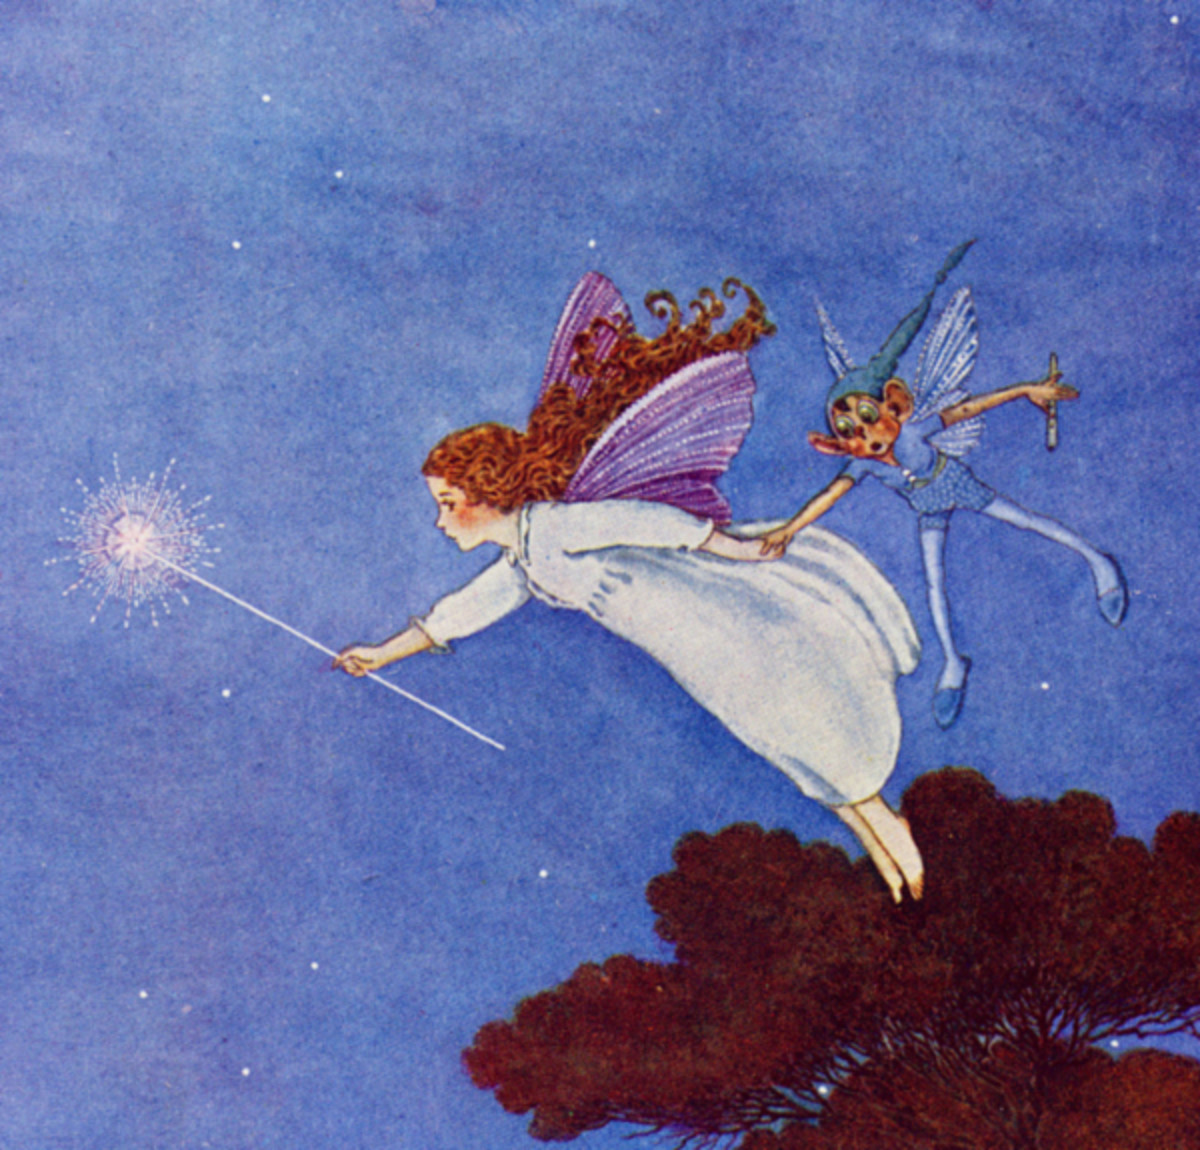 ida-rentoul-outhwaite-illustrations-of-the-fairy-realm-from-the-golden-age-of-illustration